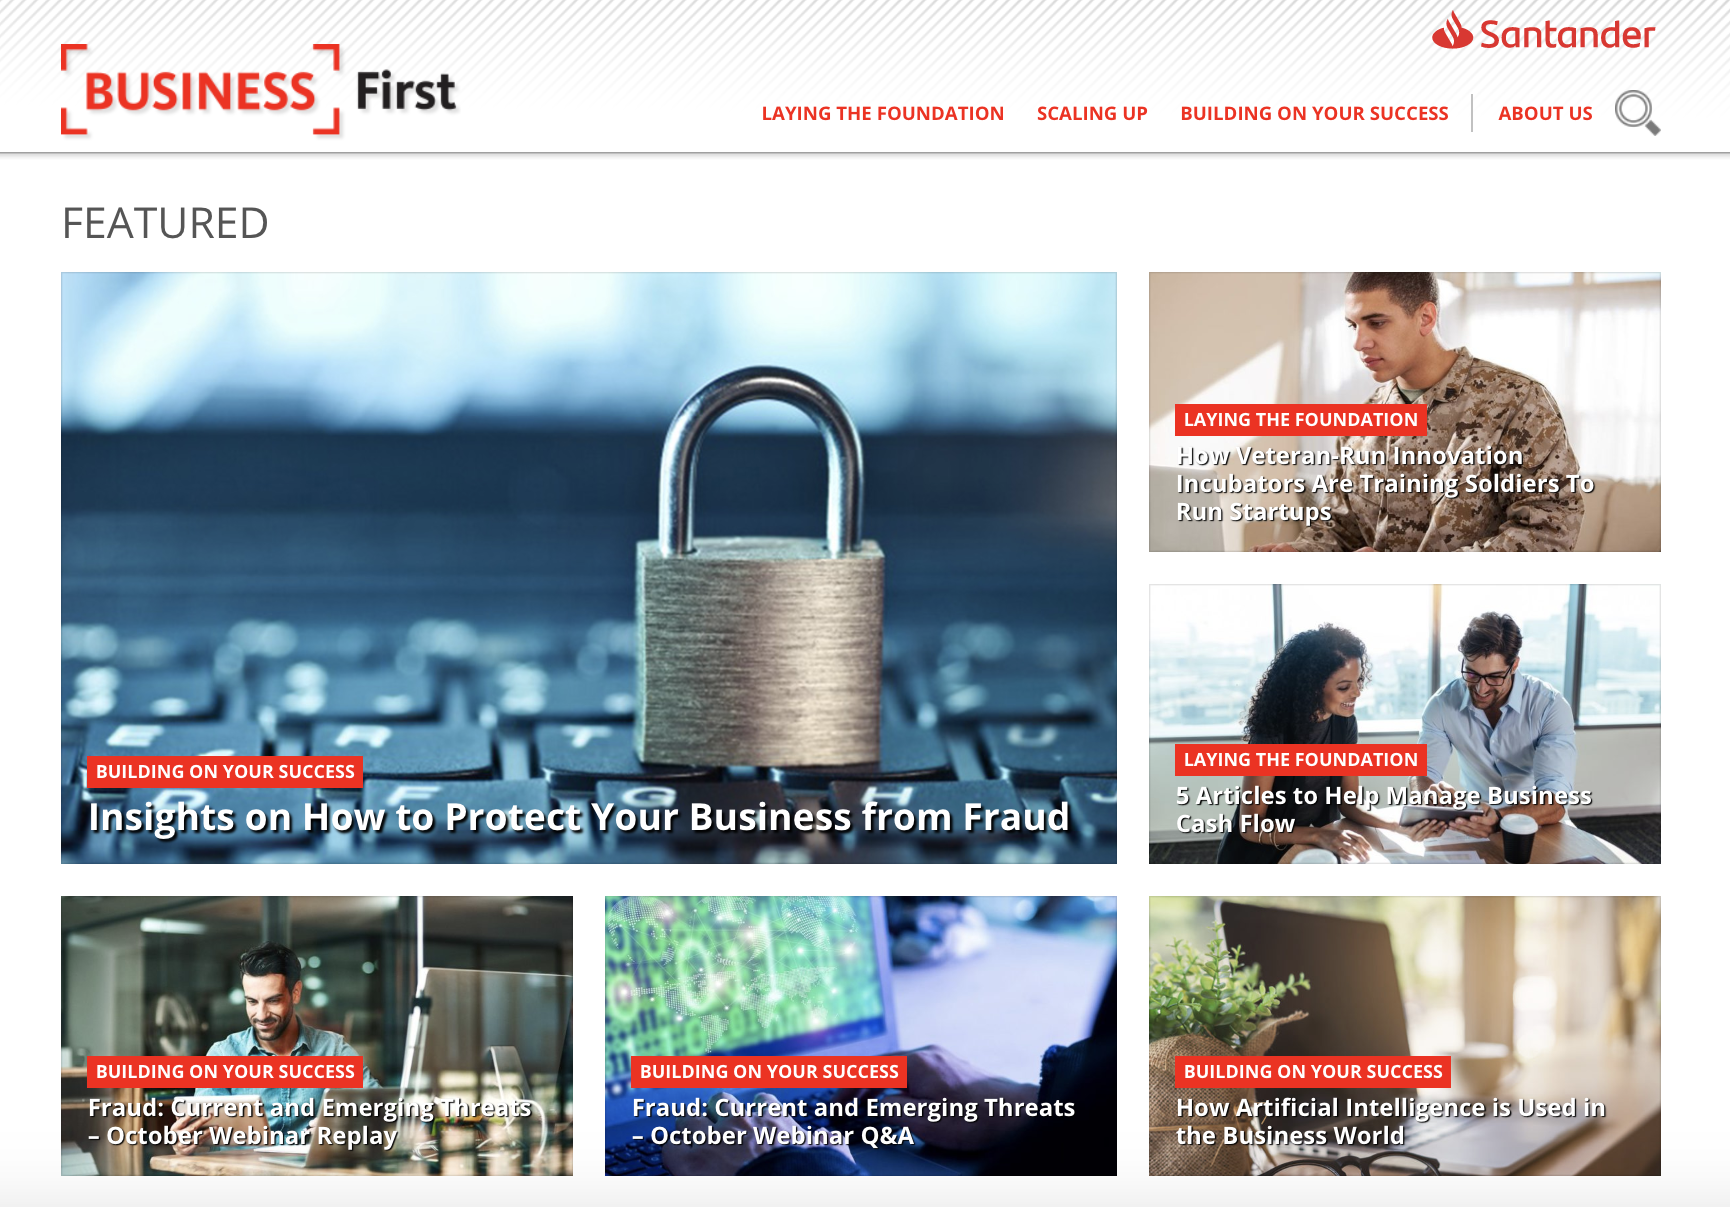 Screenshot of Business First content marketing hub by Santander Bank